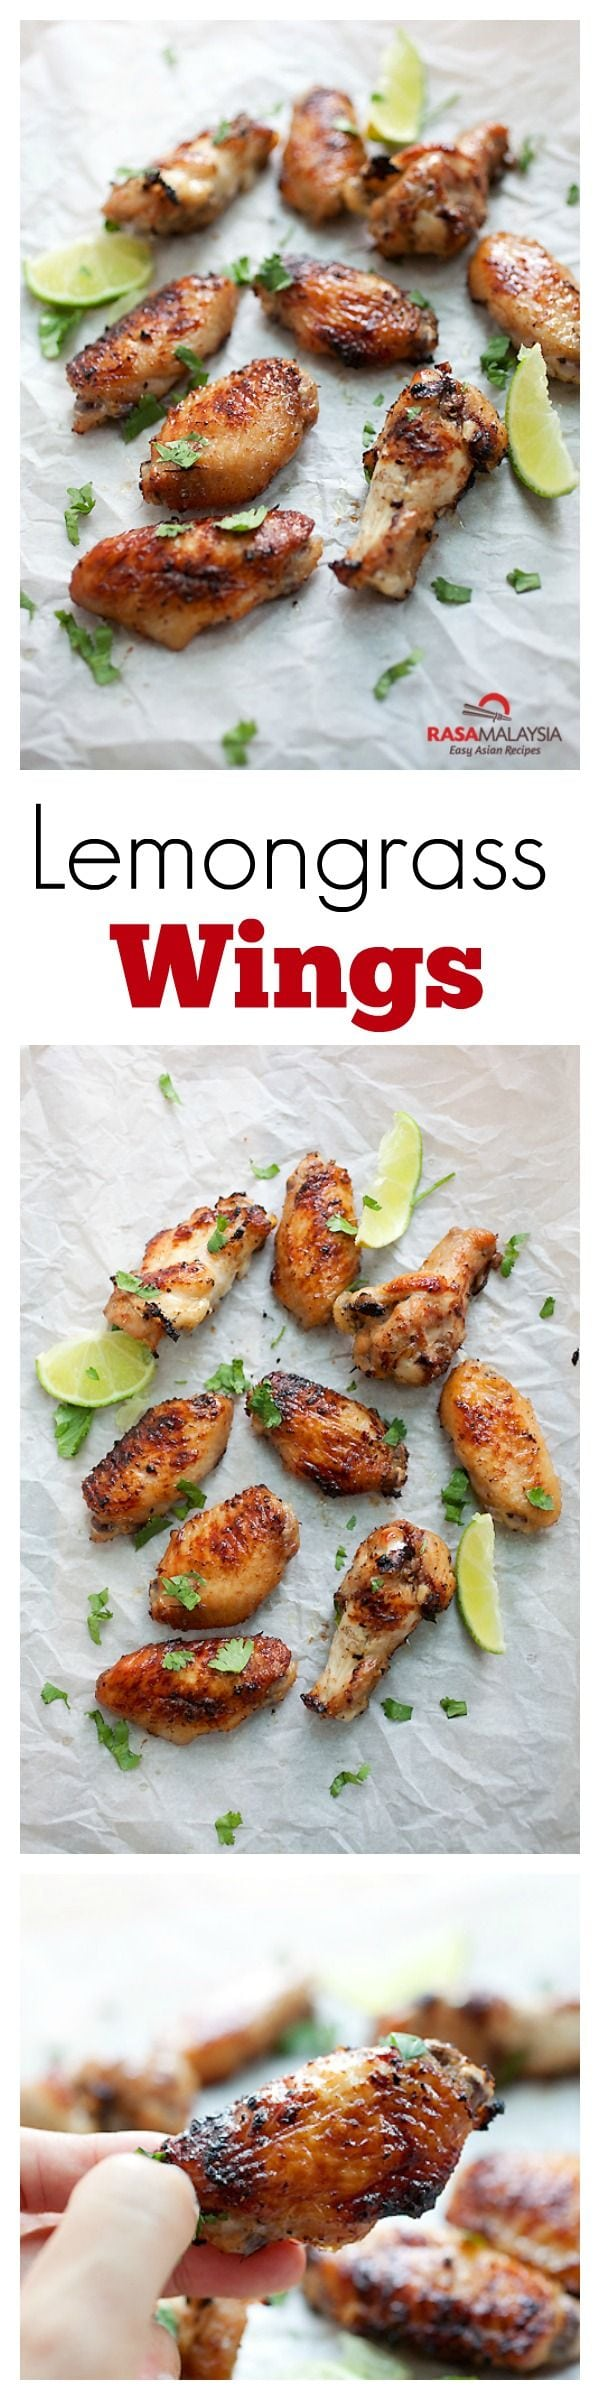 Lemongrass chicken wings - marinate the wings with lemongrass & Asian seasonings for the best party wings ever | rasamalaysia.com